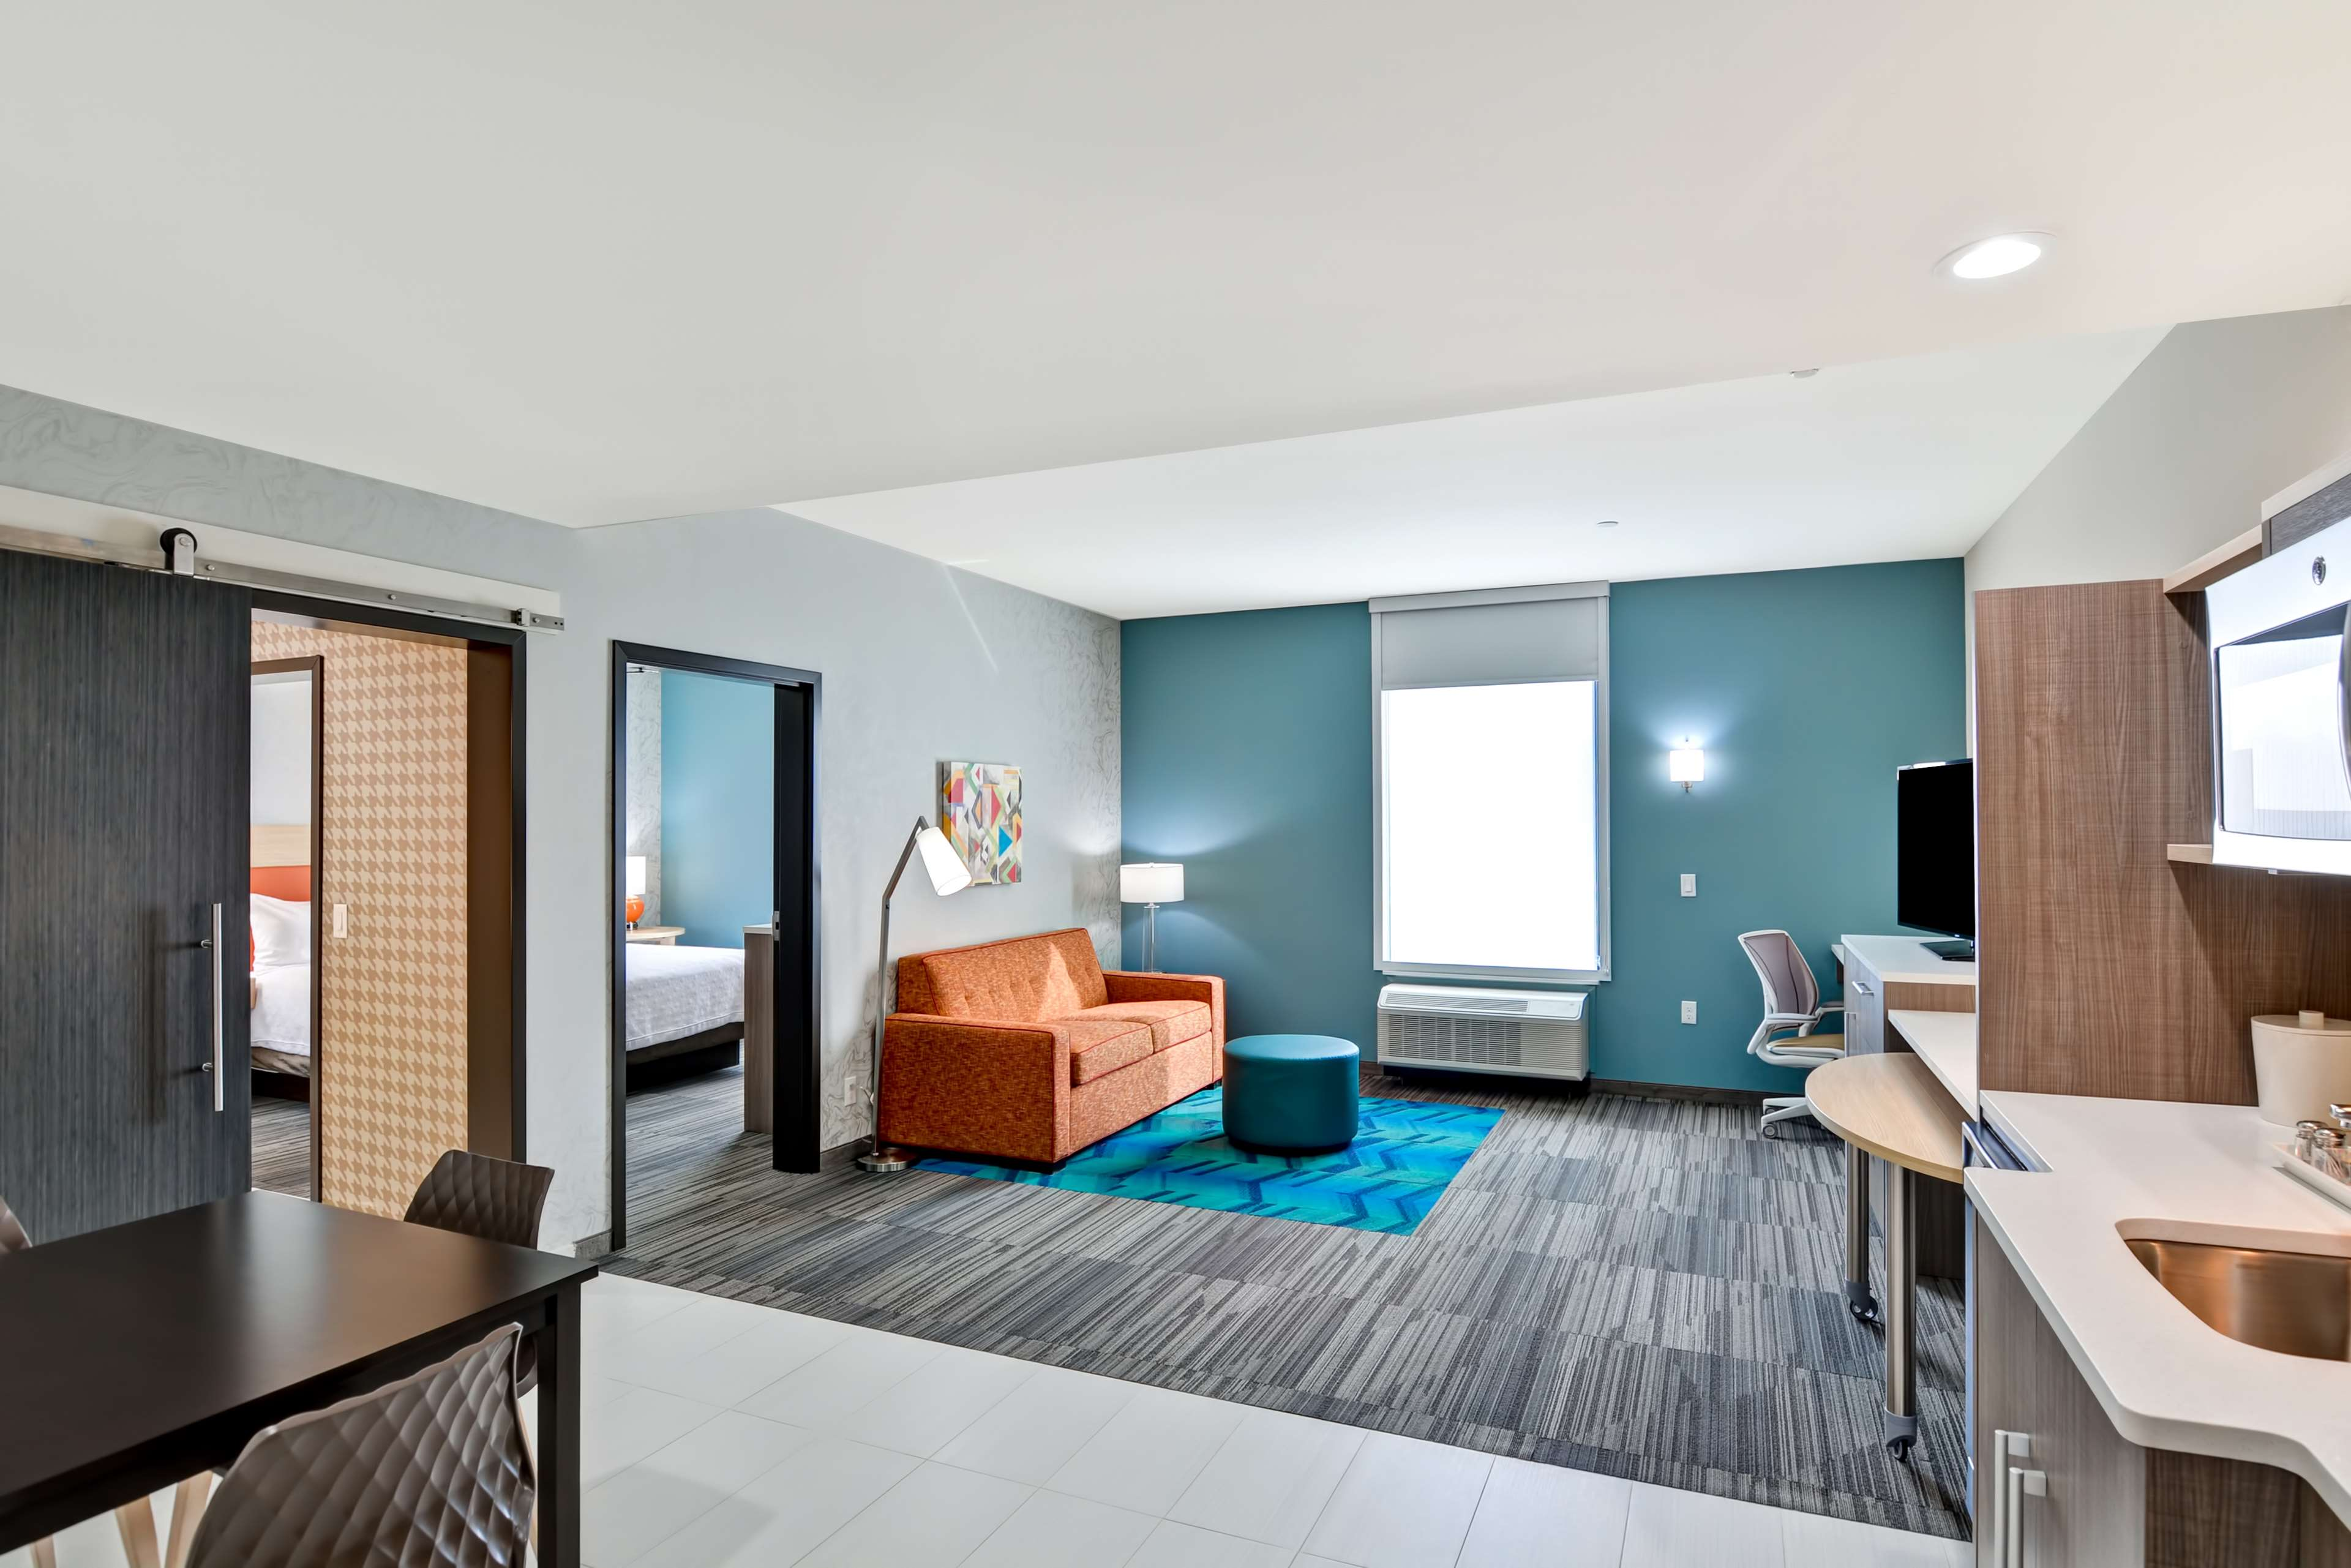 Home2 Suites by Hilton OKC Midwest City Tinker AFB image 33